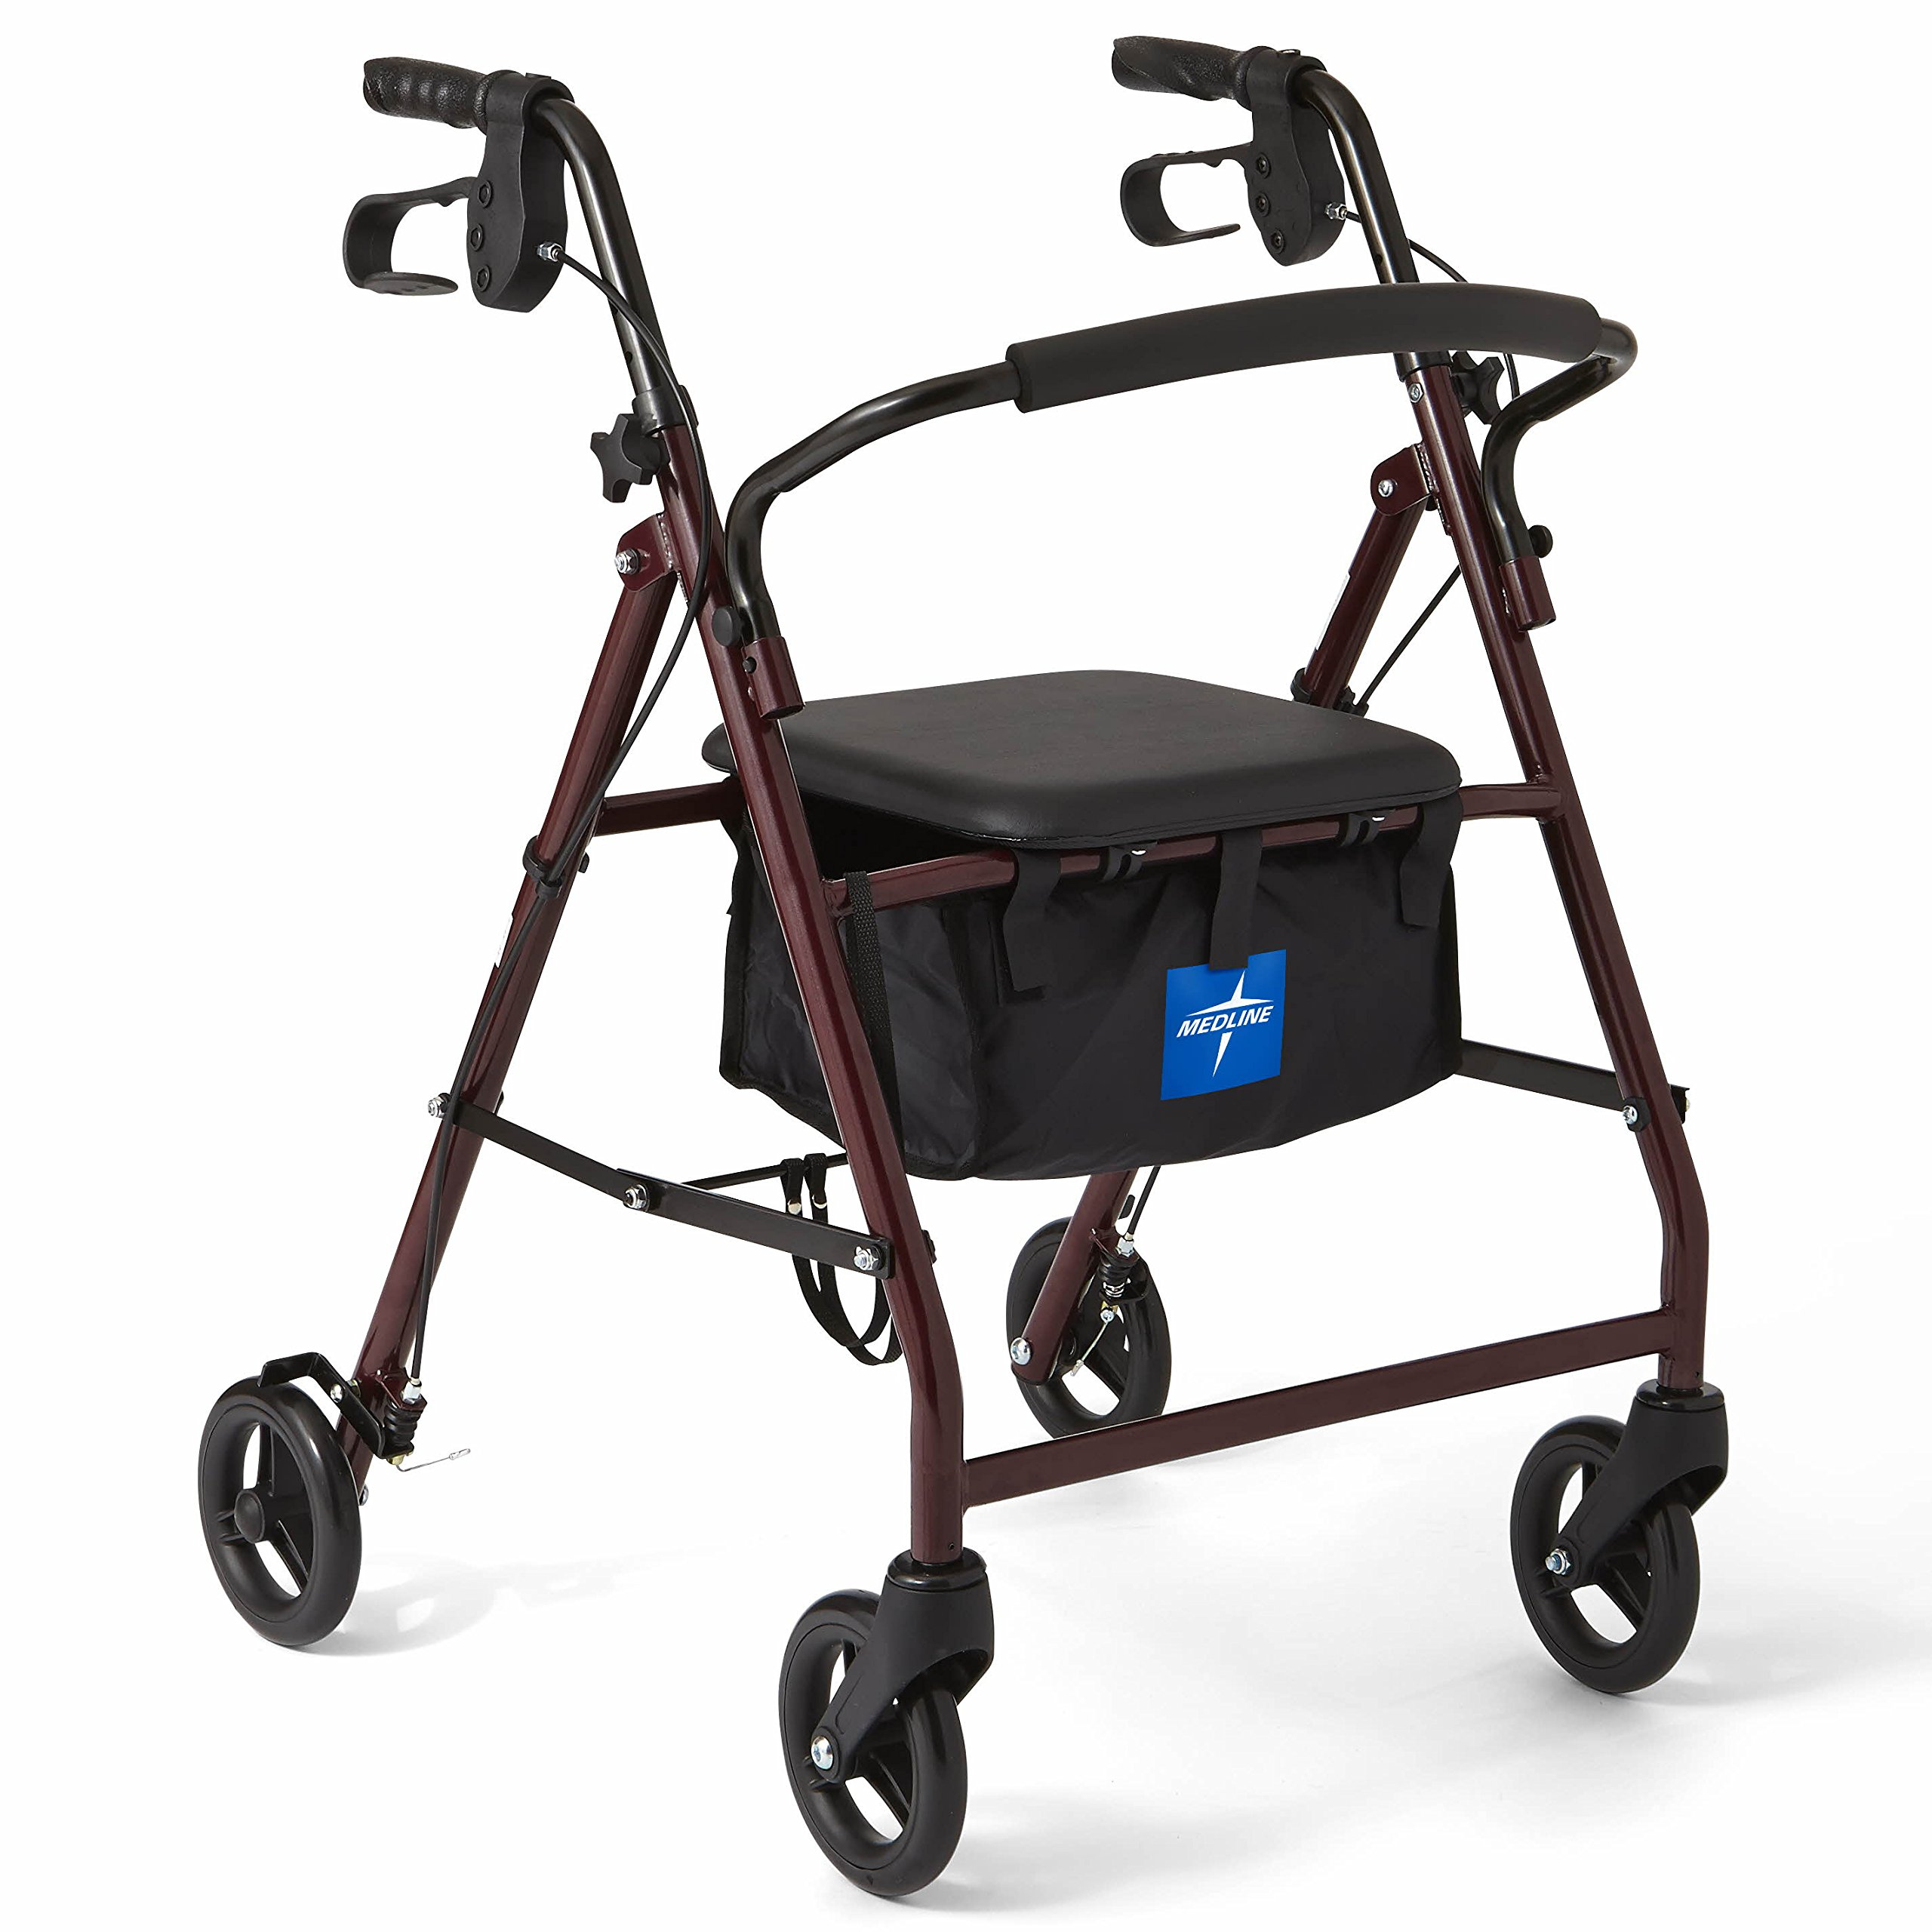 Medline Steel Rollator Mobility Walker with 350 lb Weight Capacity and 6'' wheels, Burgundy